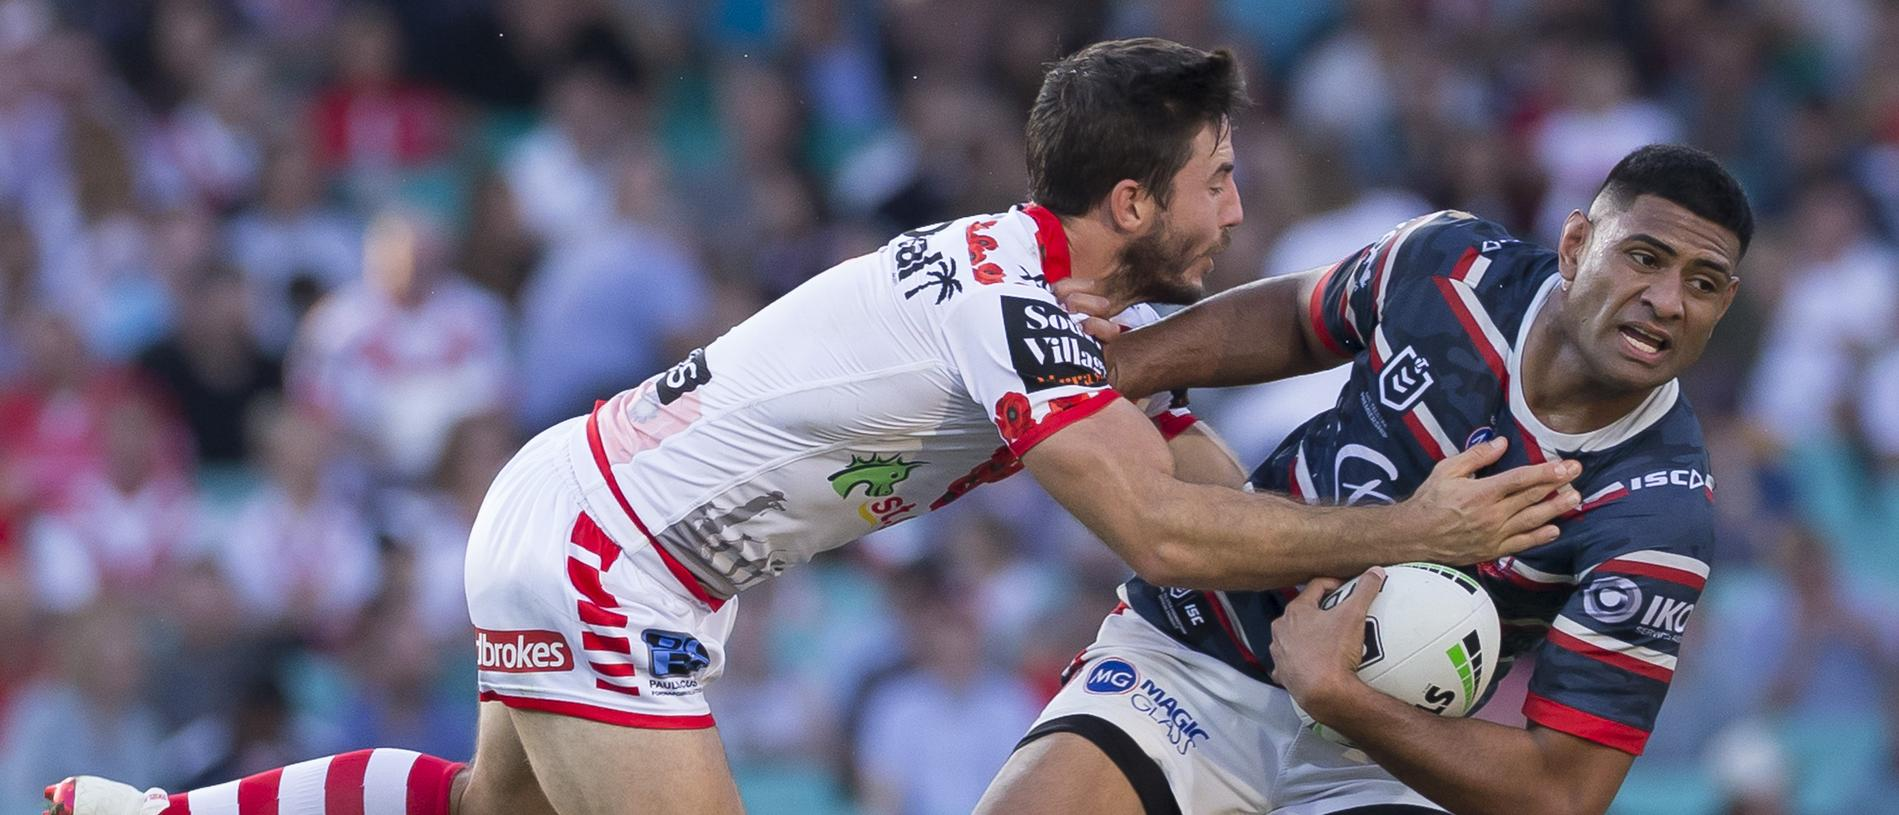 Ben Hunt of the Dragons tackles Daniel Tupou of the Roosters  during the Round 7 NRL match between the Sydney Rosters and the St George Illawarra Dragons at the SCG in Sydney, Thursday, April 25, 2019. (AAP Image/Craig Golding) NO ARCHIVING, EDITORIAL USE ONLY